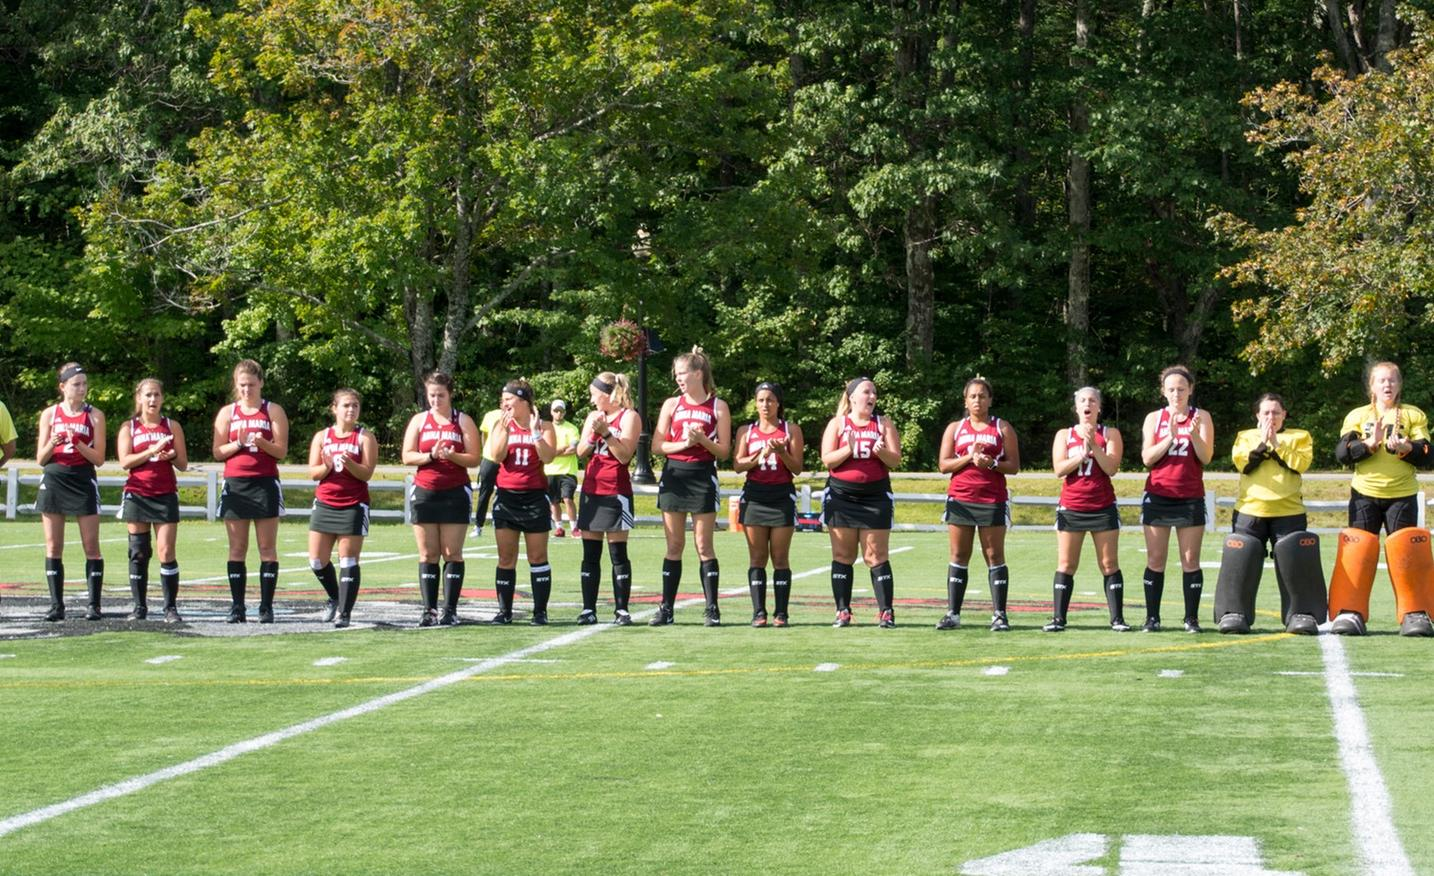 FIELD HOCKEY: Simmons knocks Anna Maria from GNAC playoffs